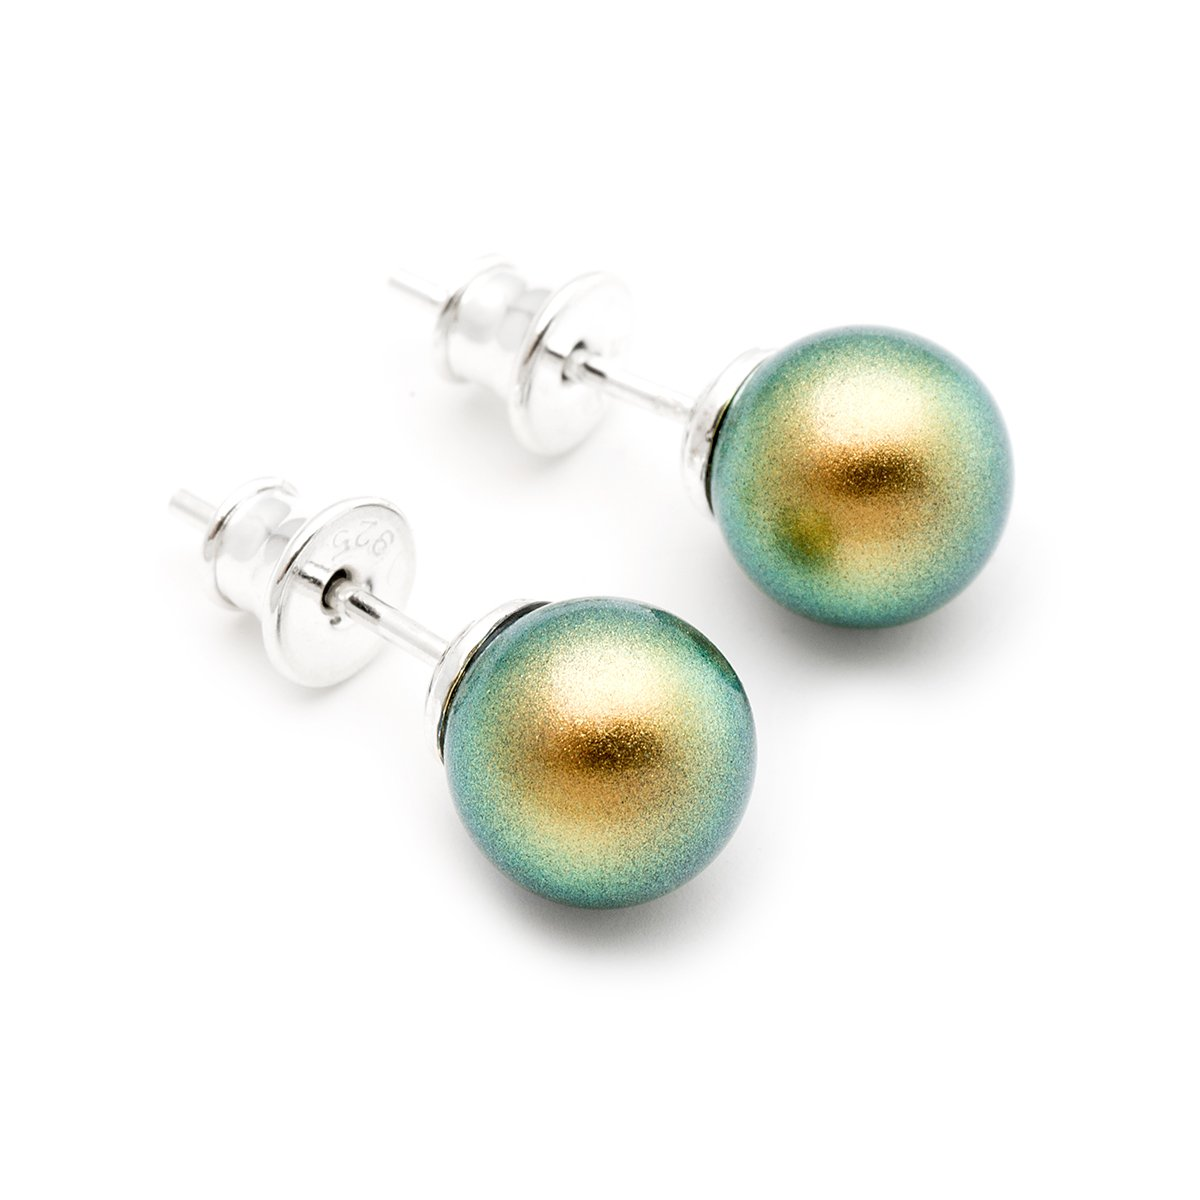 Iridescent green Swarovski Elements simulated pearl 8mm sterling silver 925 stud earrings